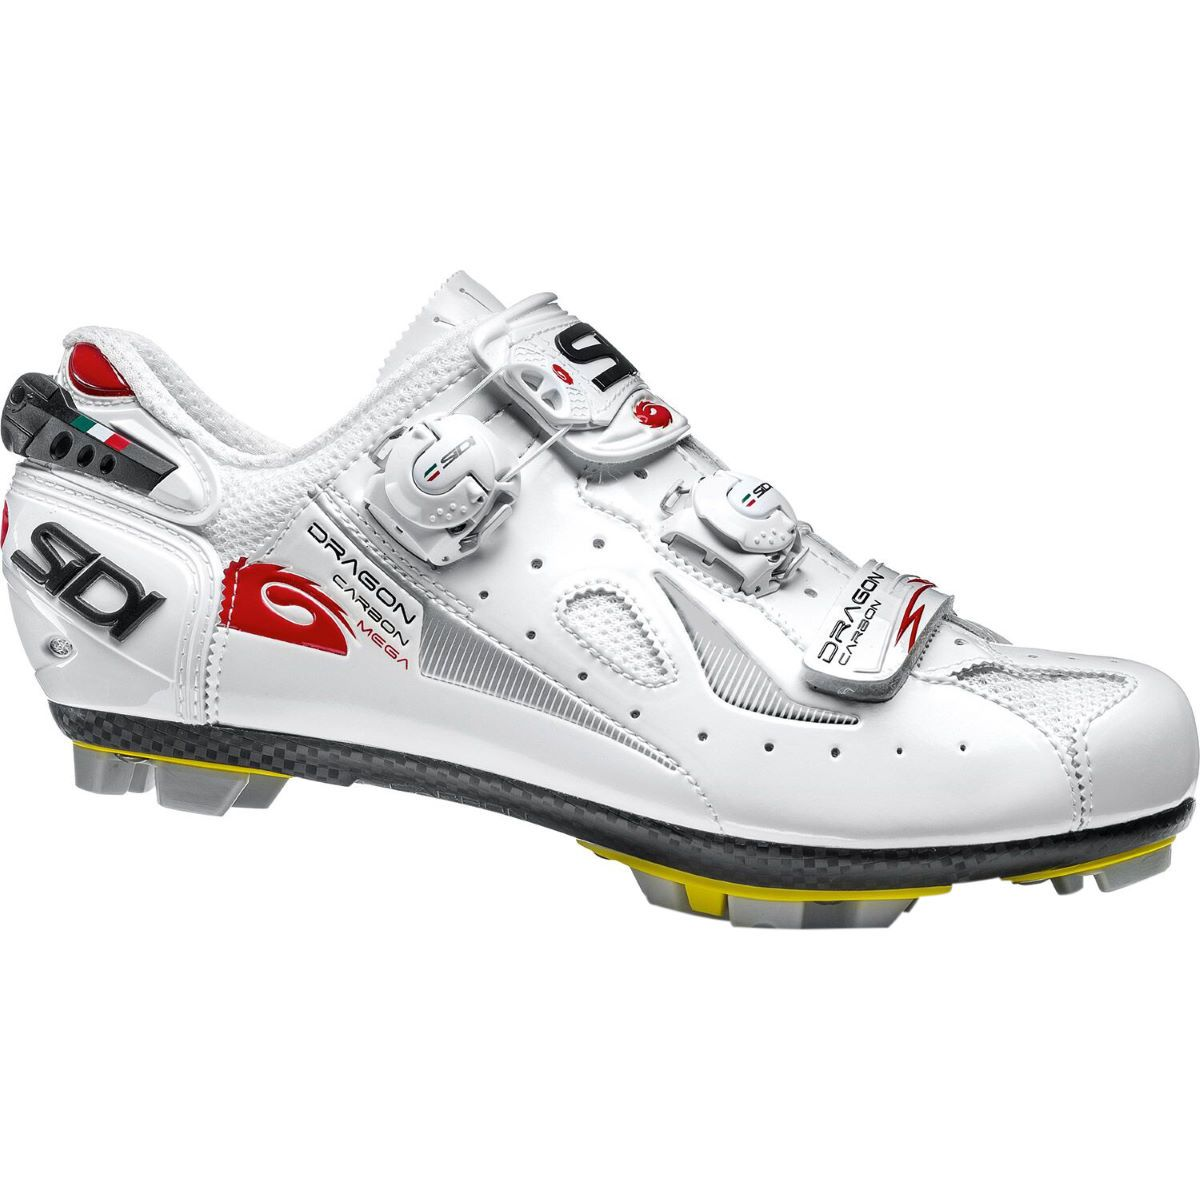 Sidi Dragon 4 Srs Carbon Mtb Shoe Mega Wide Fit Offroad Shoes